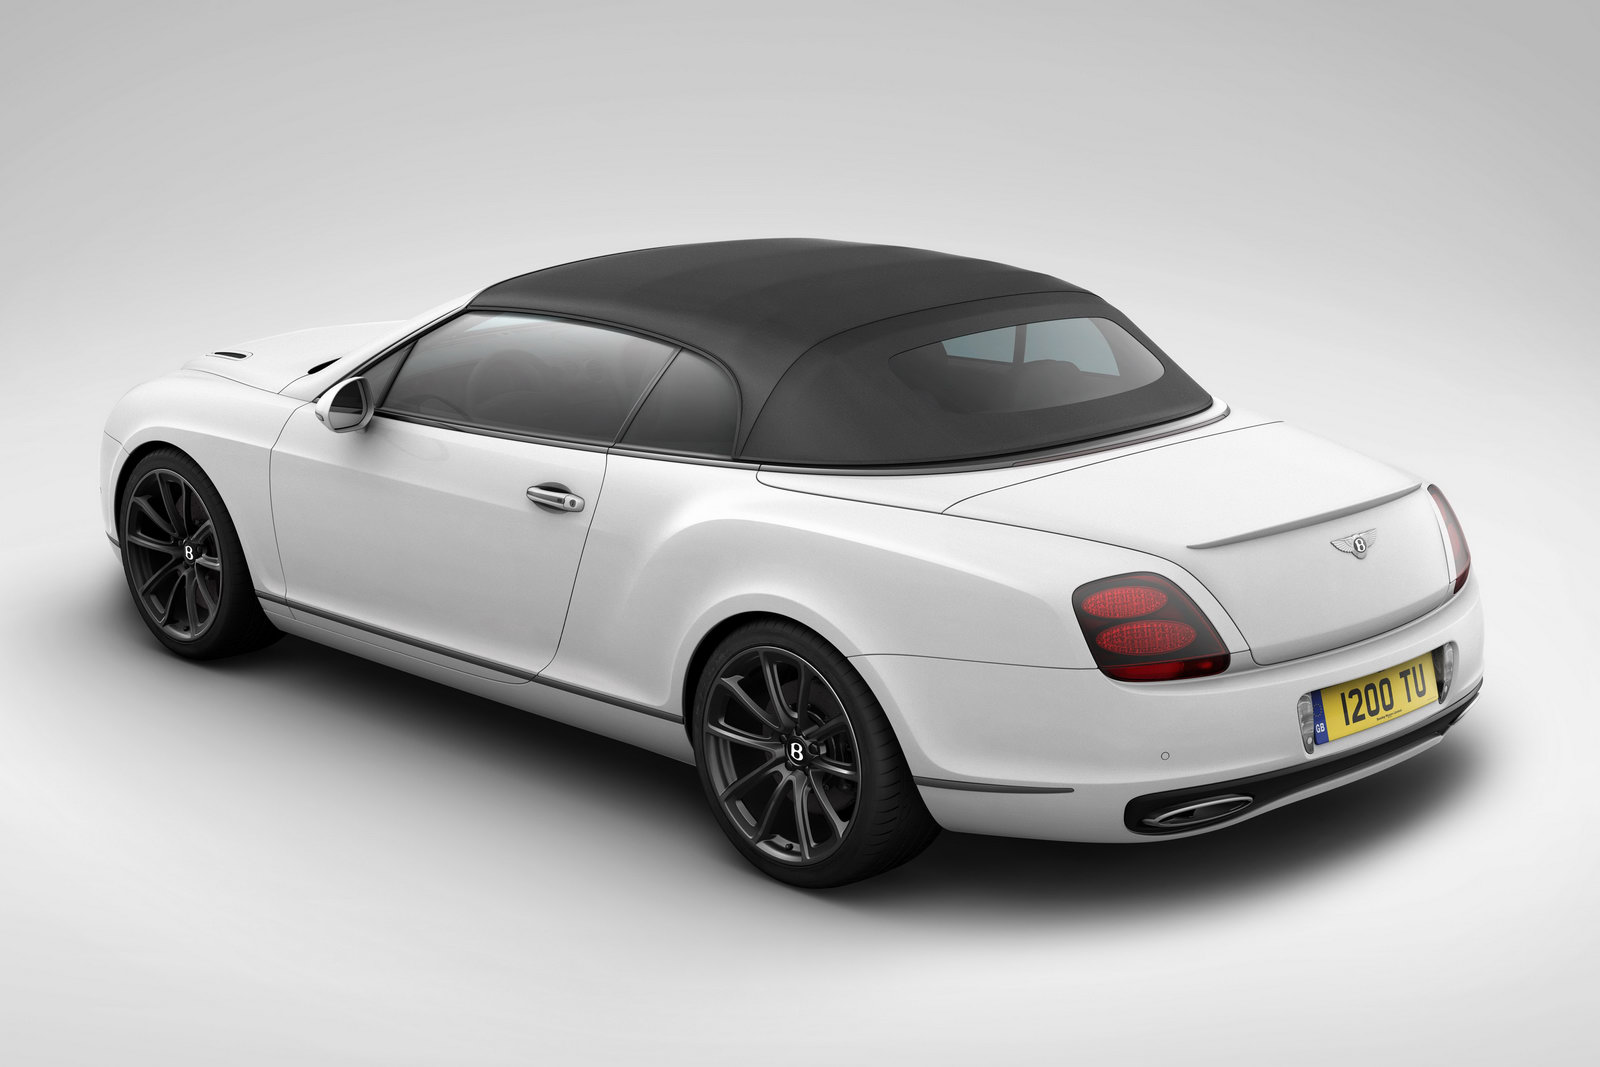 Bnetley Continental SE 9 Bentley Supersports Special Edition Convertible celebrating Ice Speed Record